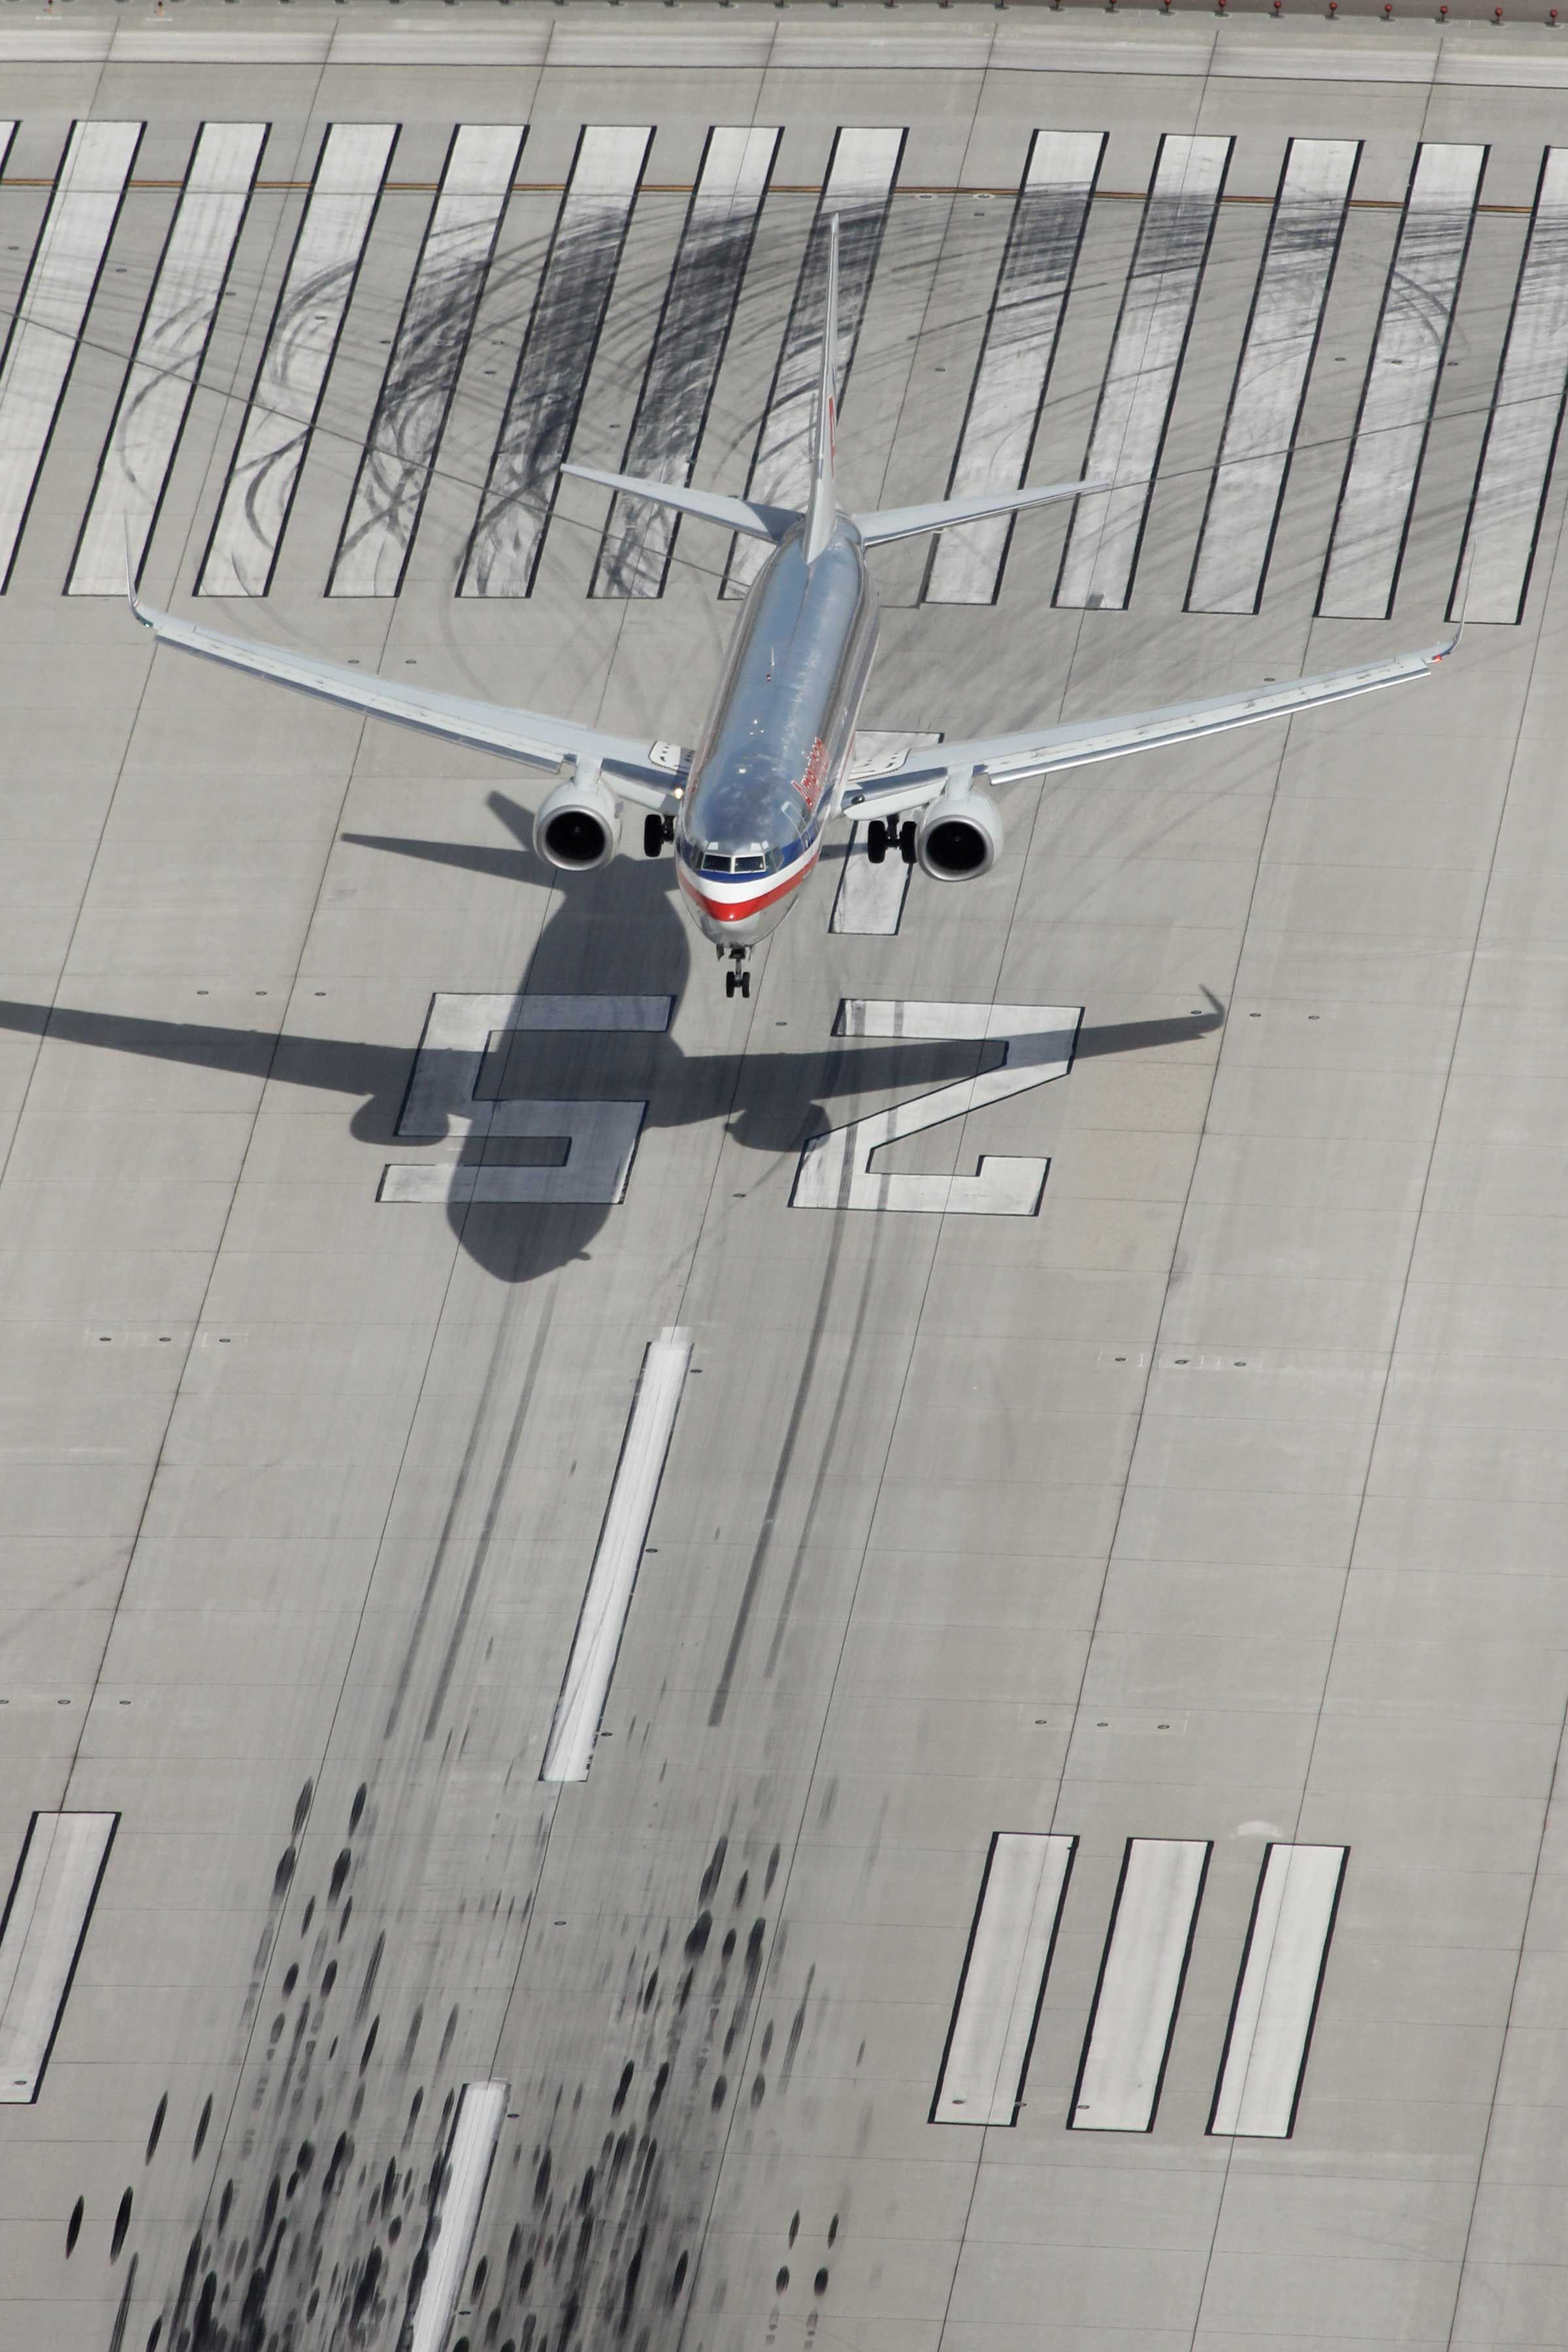 Ready for touchdown AA 737 Boeing aircraft, Aviation